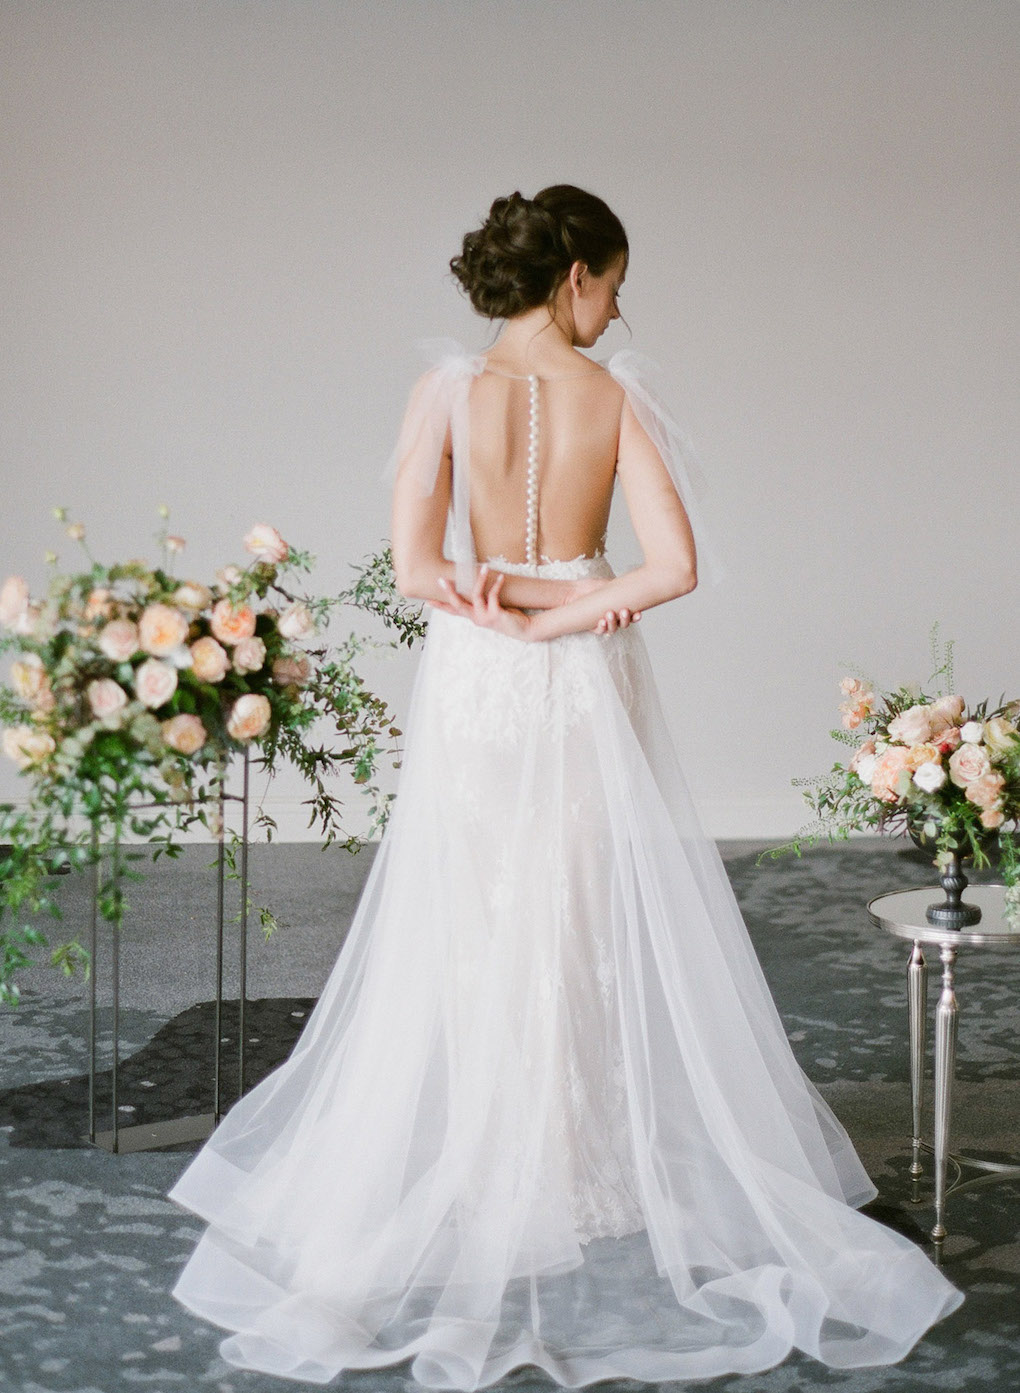 Wedding dress details with pearls: Soft and Subtle Palettes of Spring Blossoms | Editorial Shoot at The Renaissance Pittsburgh by Exhale Events. See more inspiration at exhale-events.com!